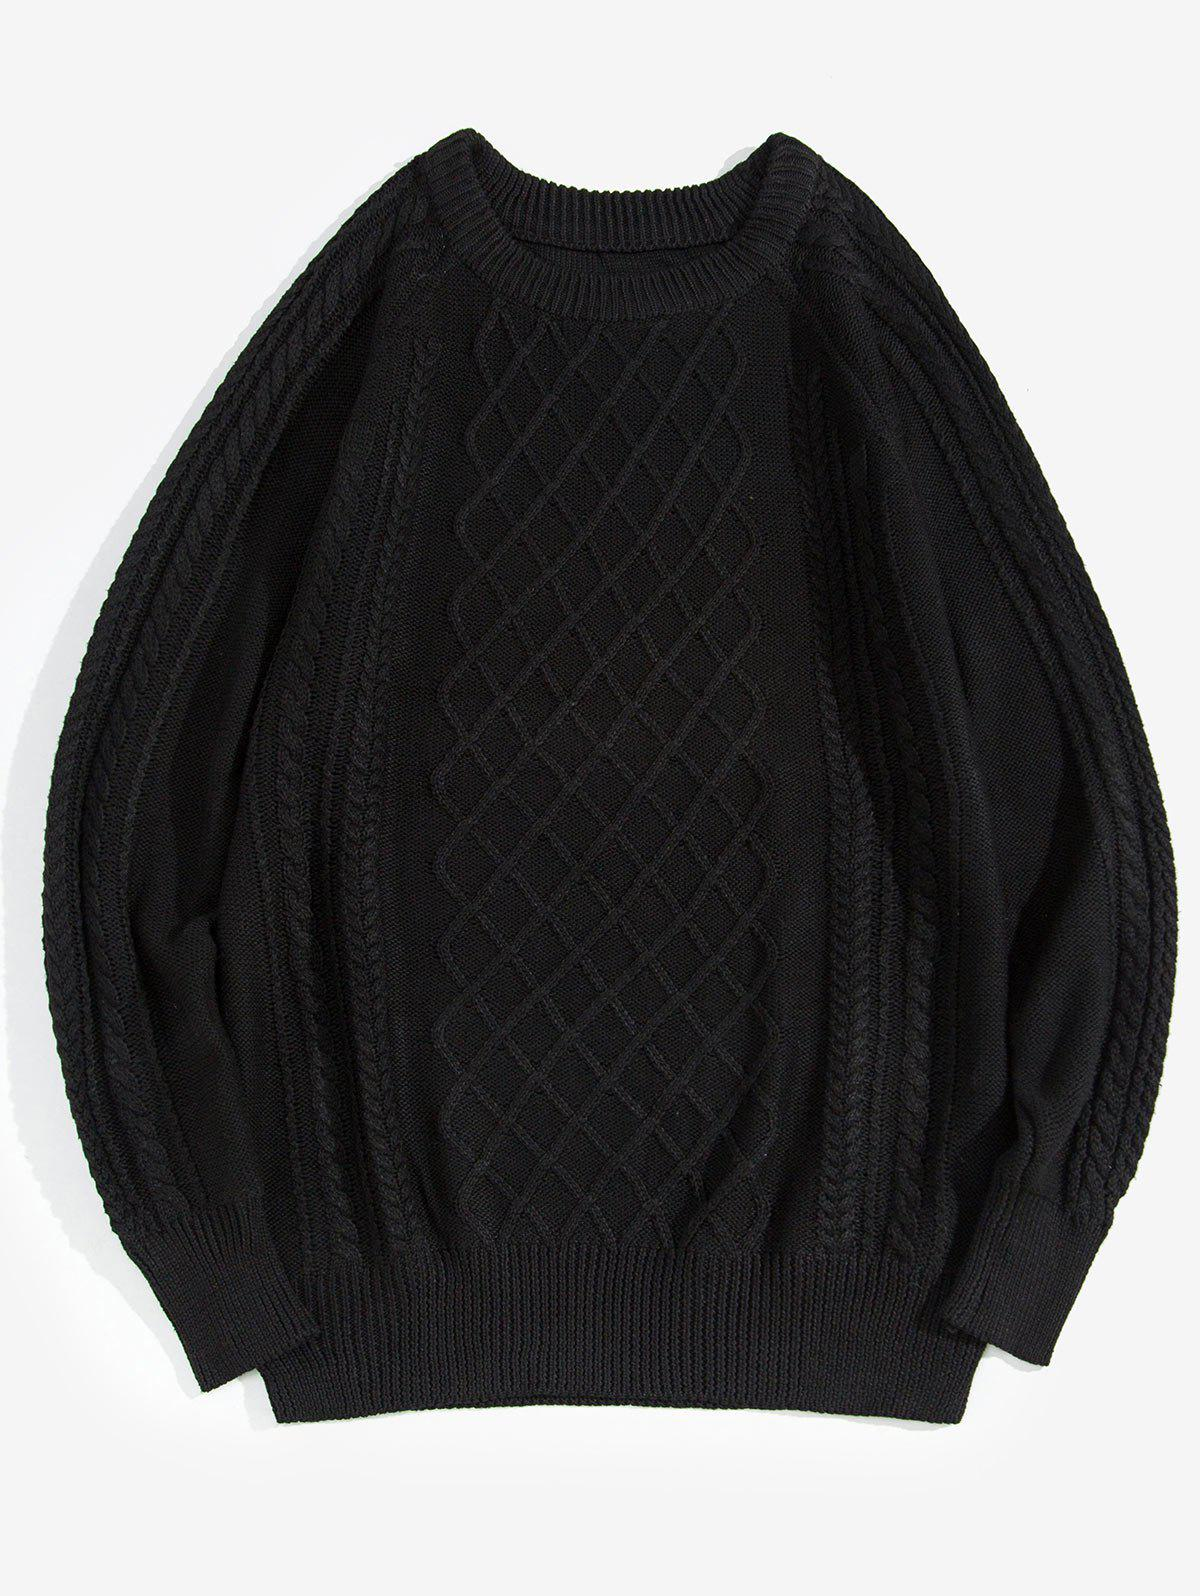 Solid Color Cable Knit Pullover Sweater - BLACK XS